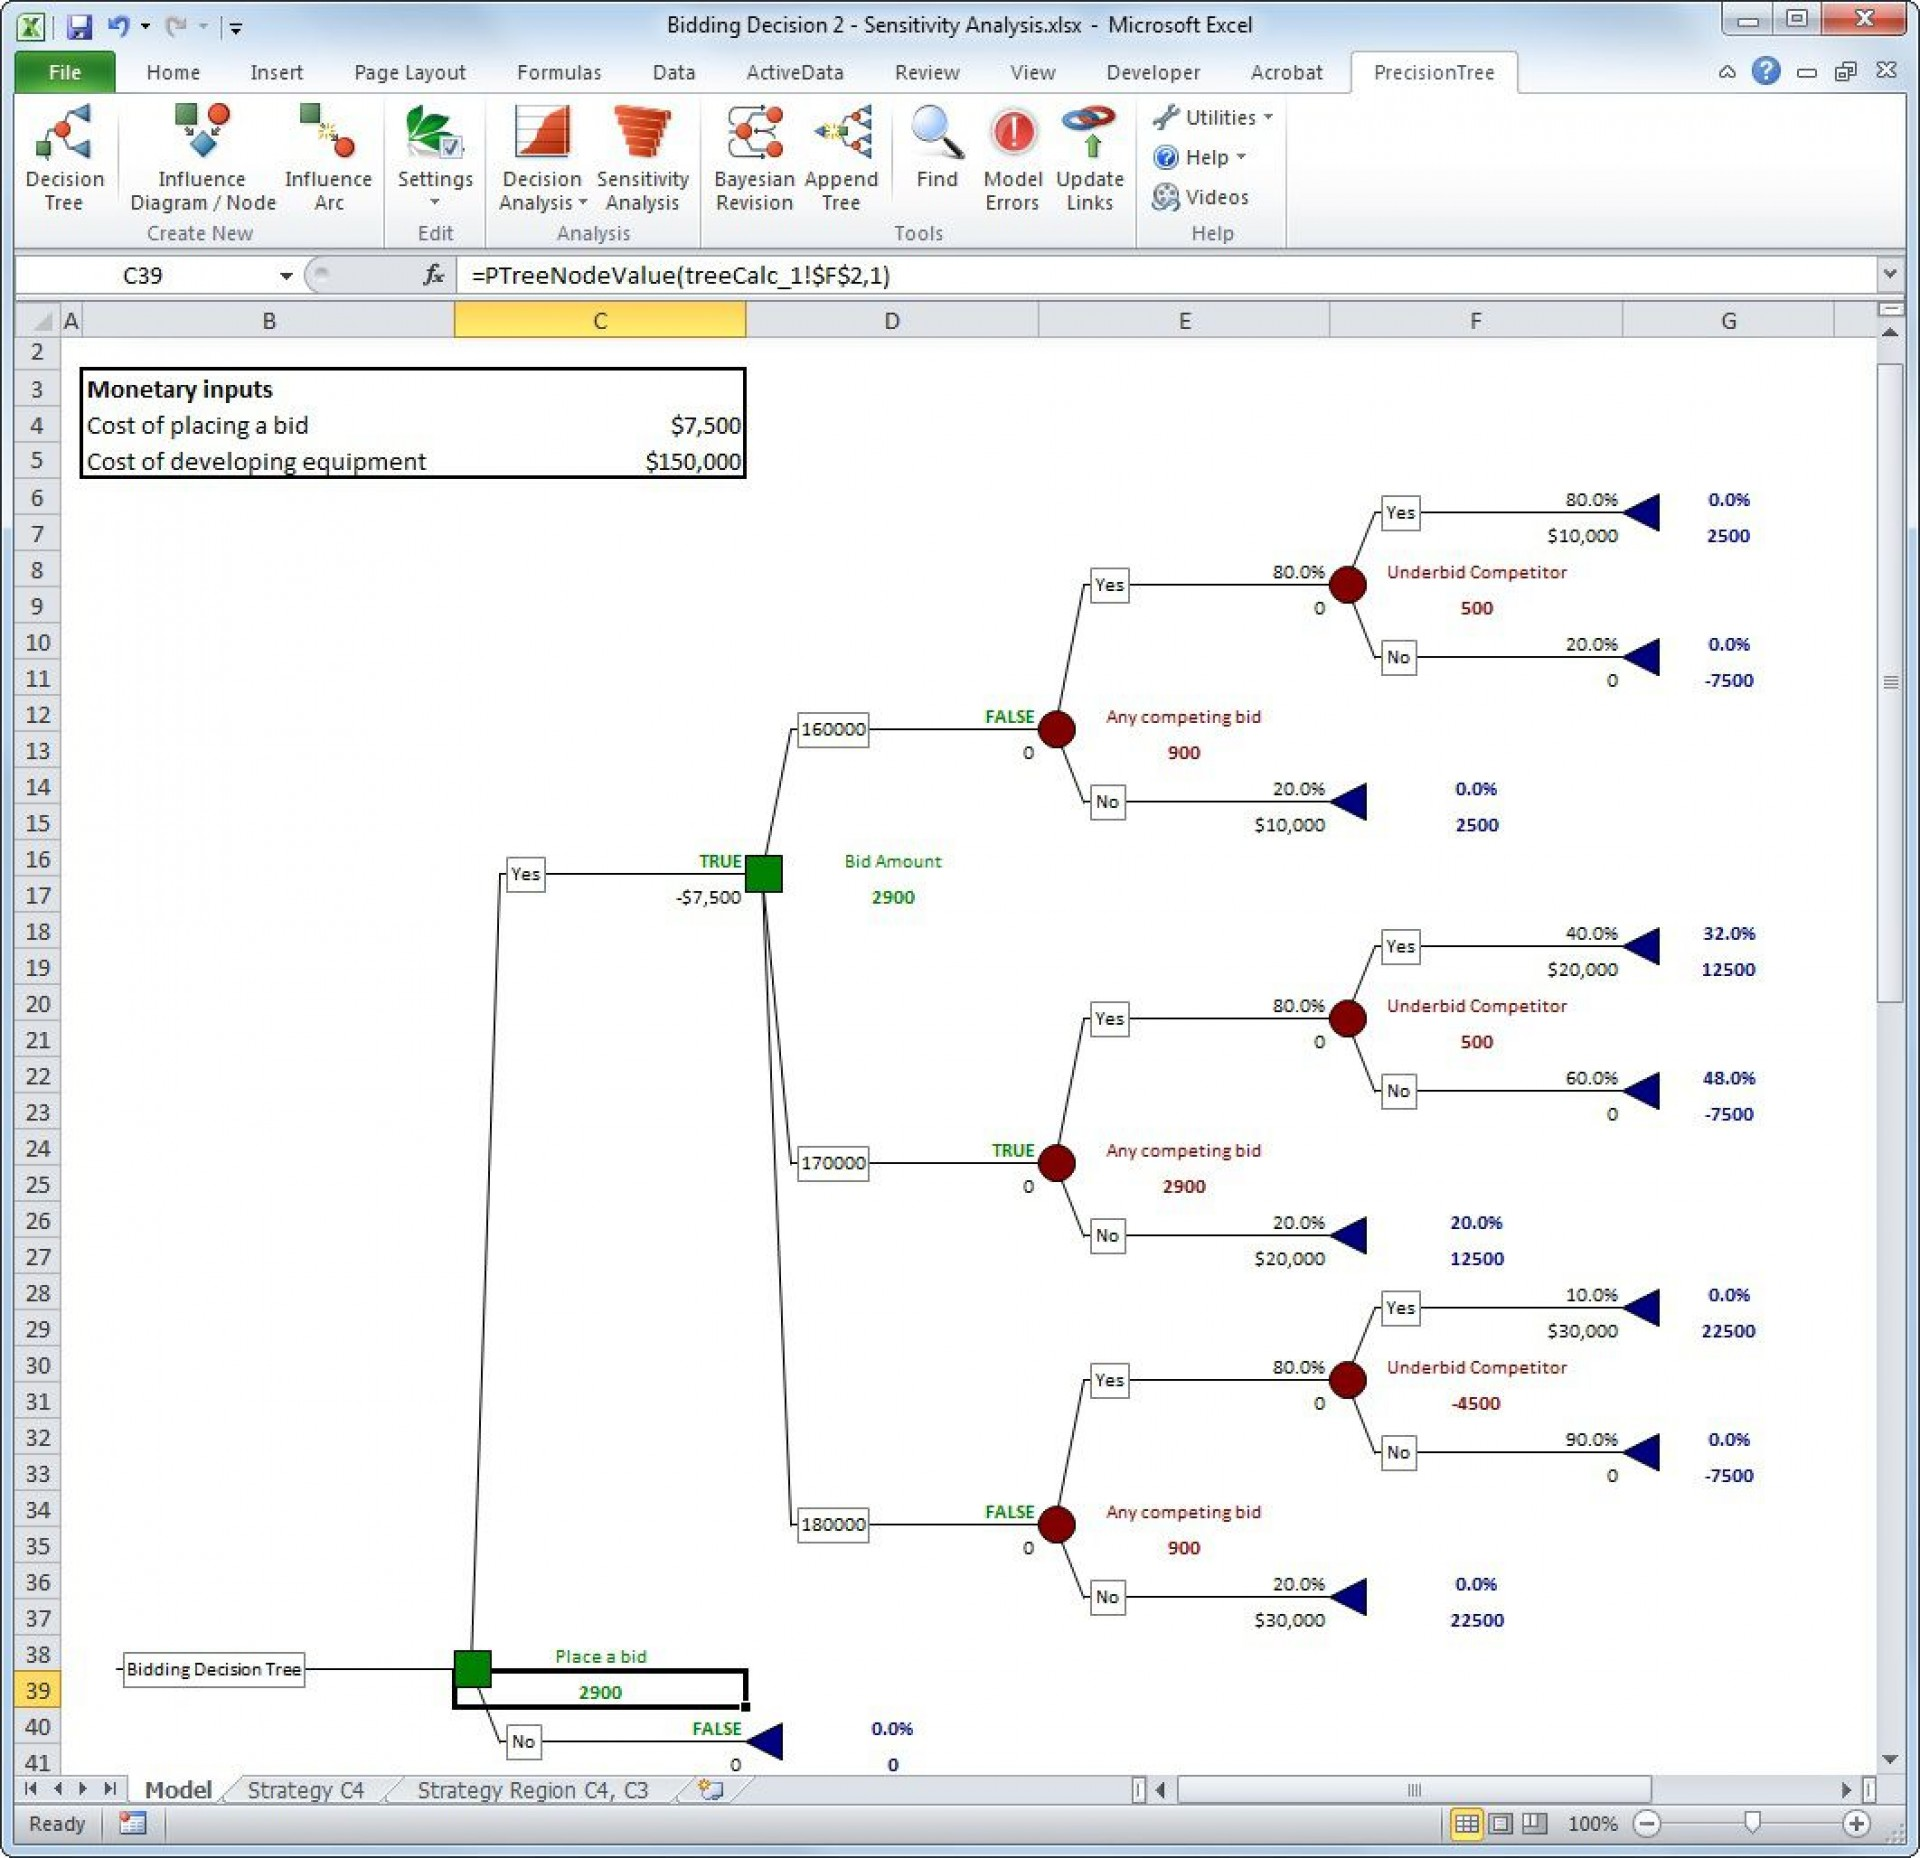 000 Top Decision Tree Template Excel 2016 Sample 1920